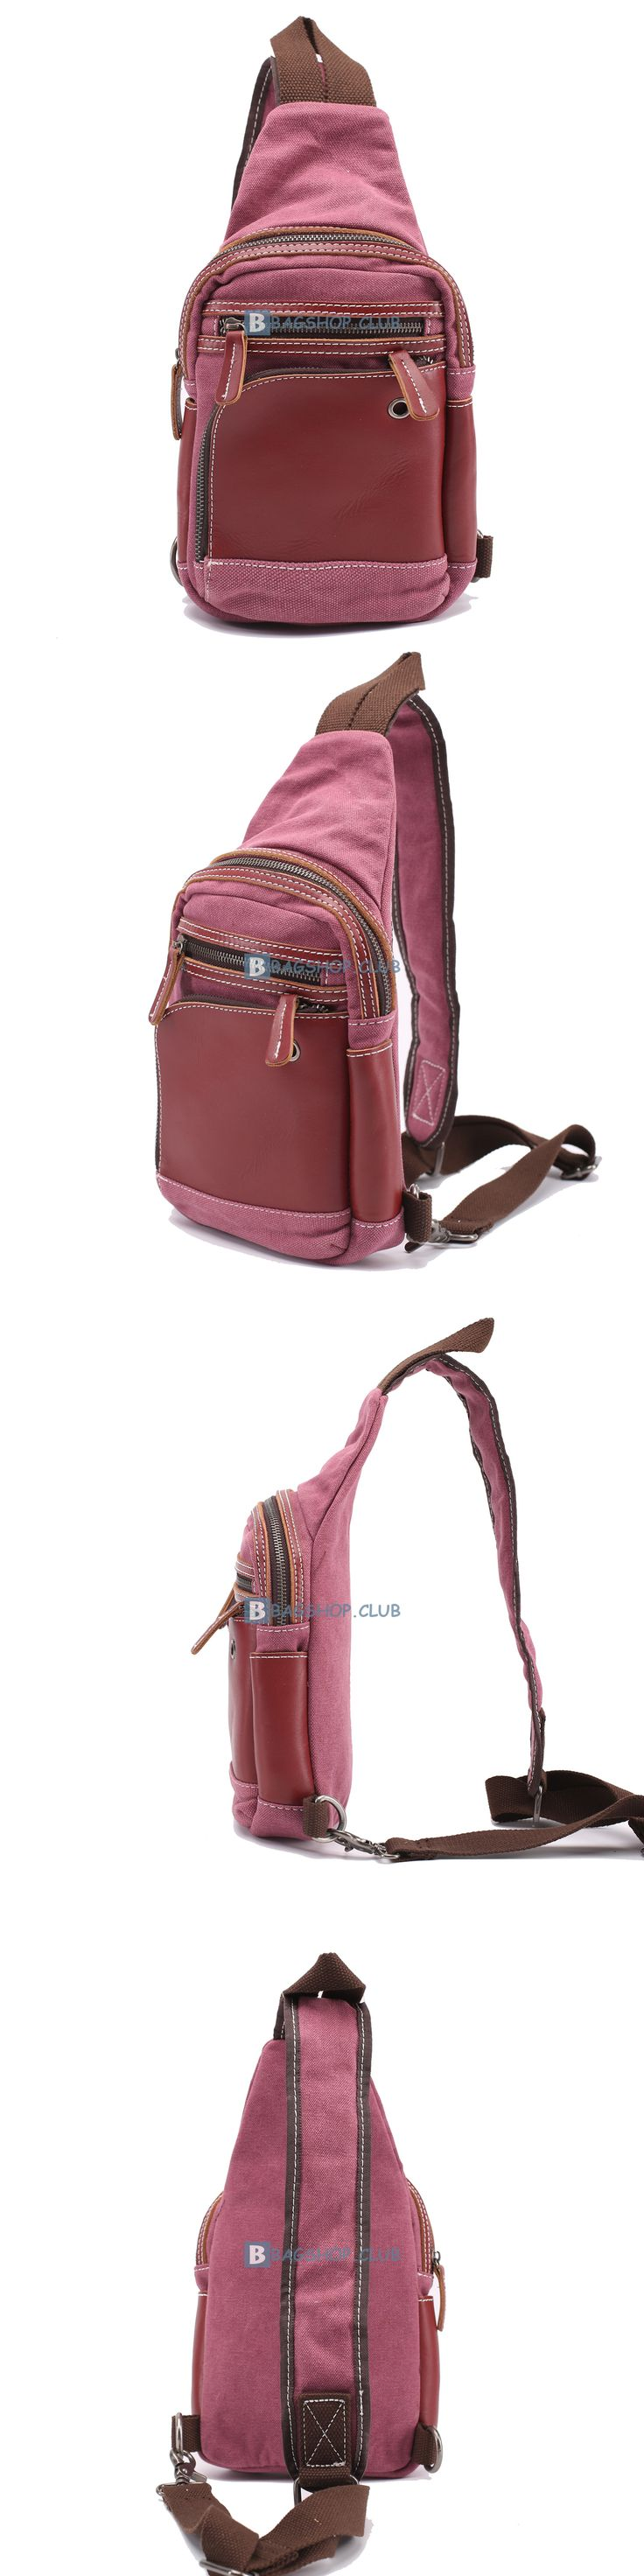 Cross Body Sling Backpack Canvas Sling Bags Material: canvas Color: Red Size: Large: 28*28*7 cm Small: 16*25*7 cm Gender: Female Related sling bags:Mens Shoulde